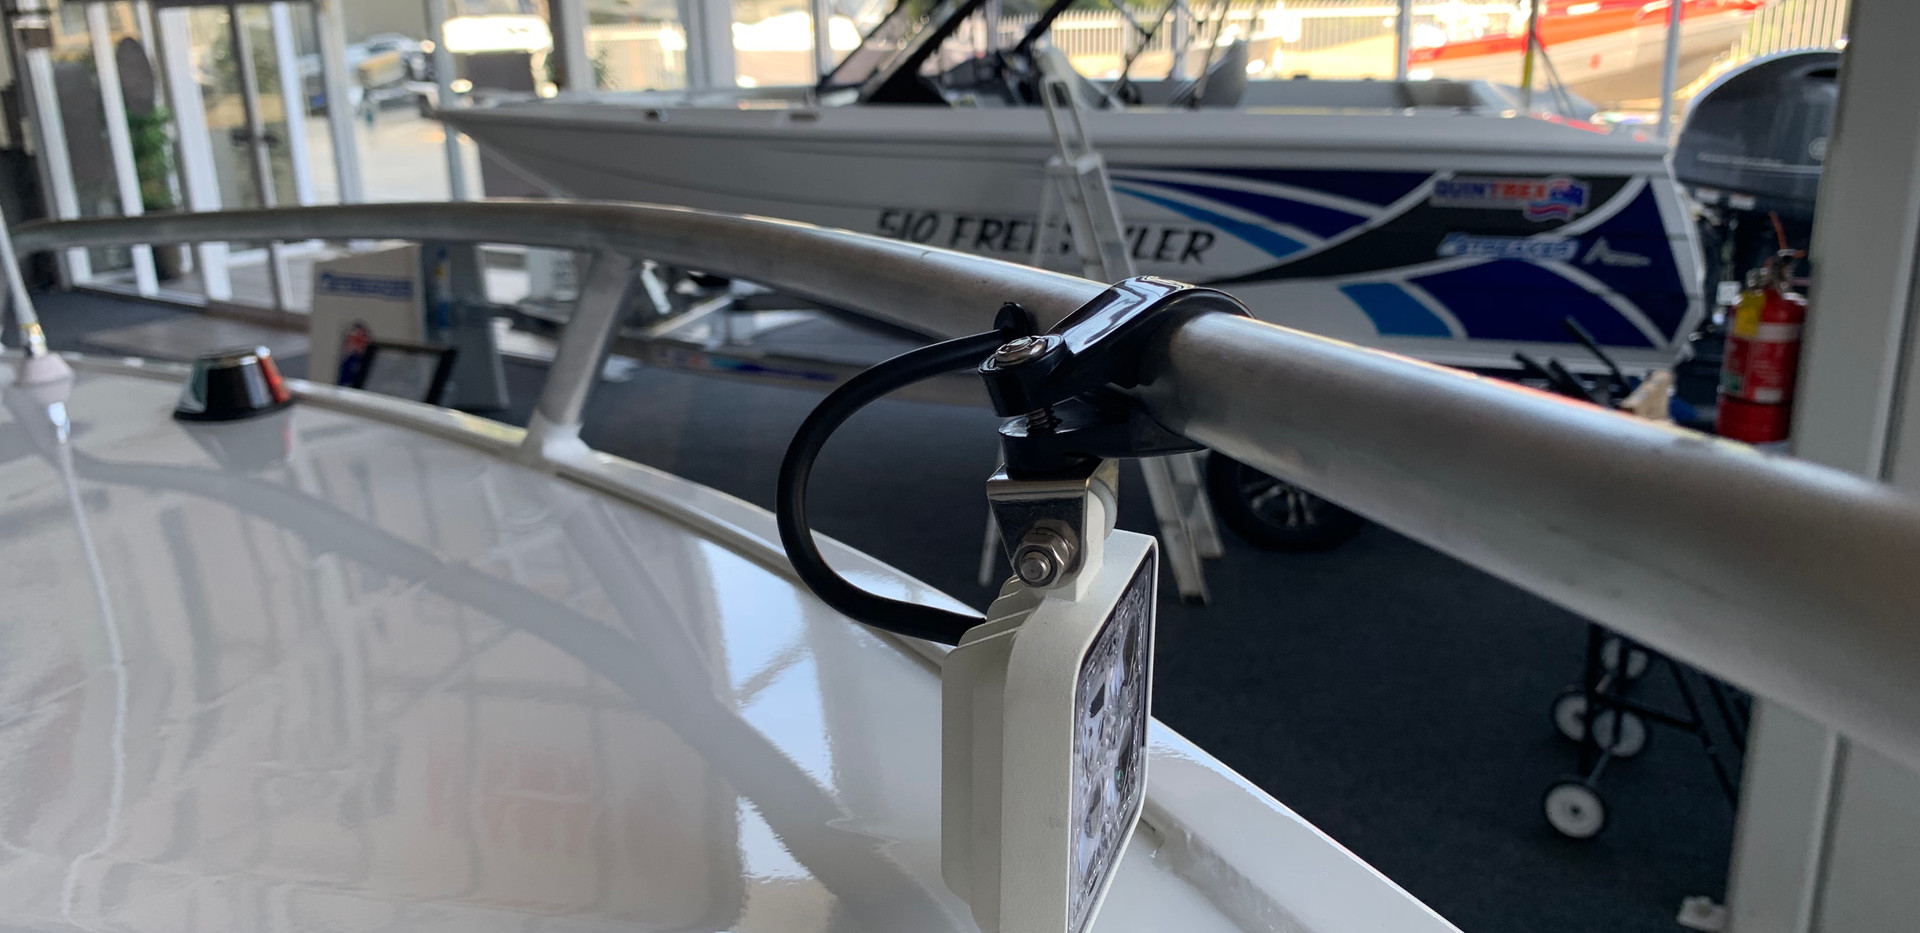 Quintrex 530 Fishabout at Streaker Marine